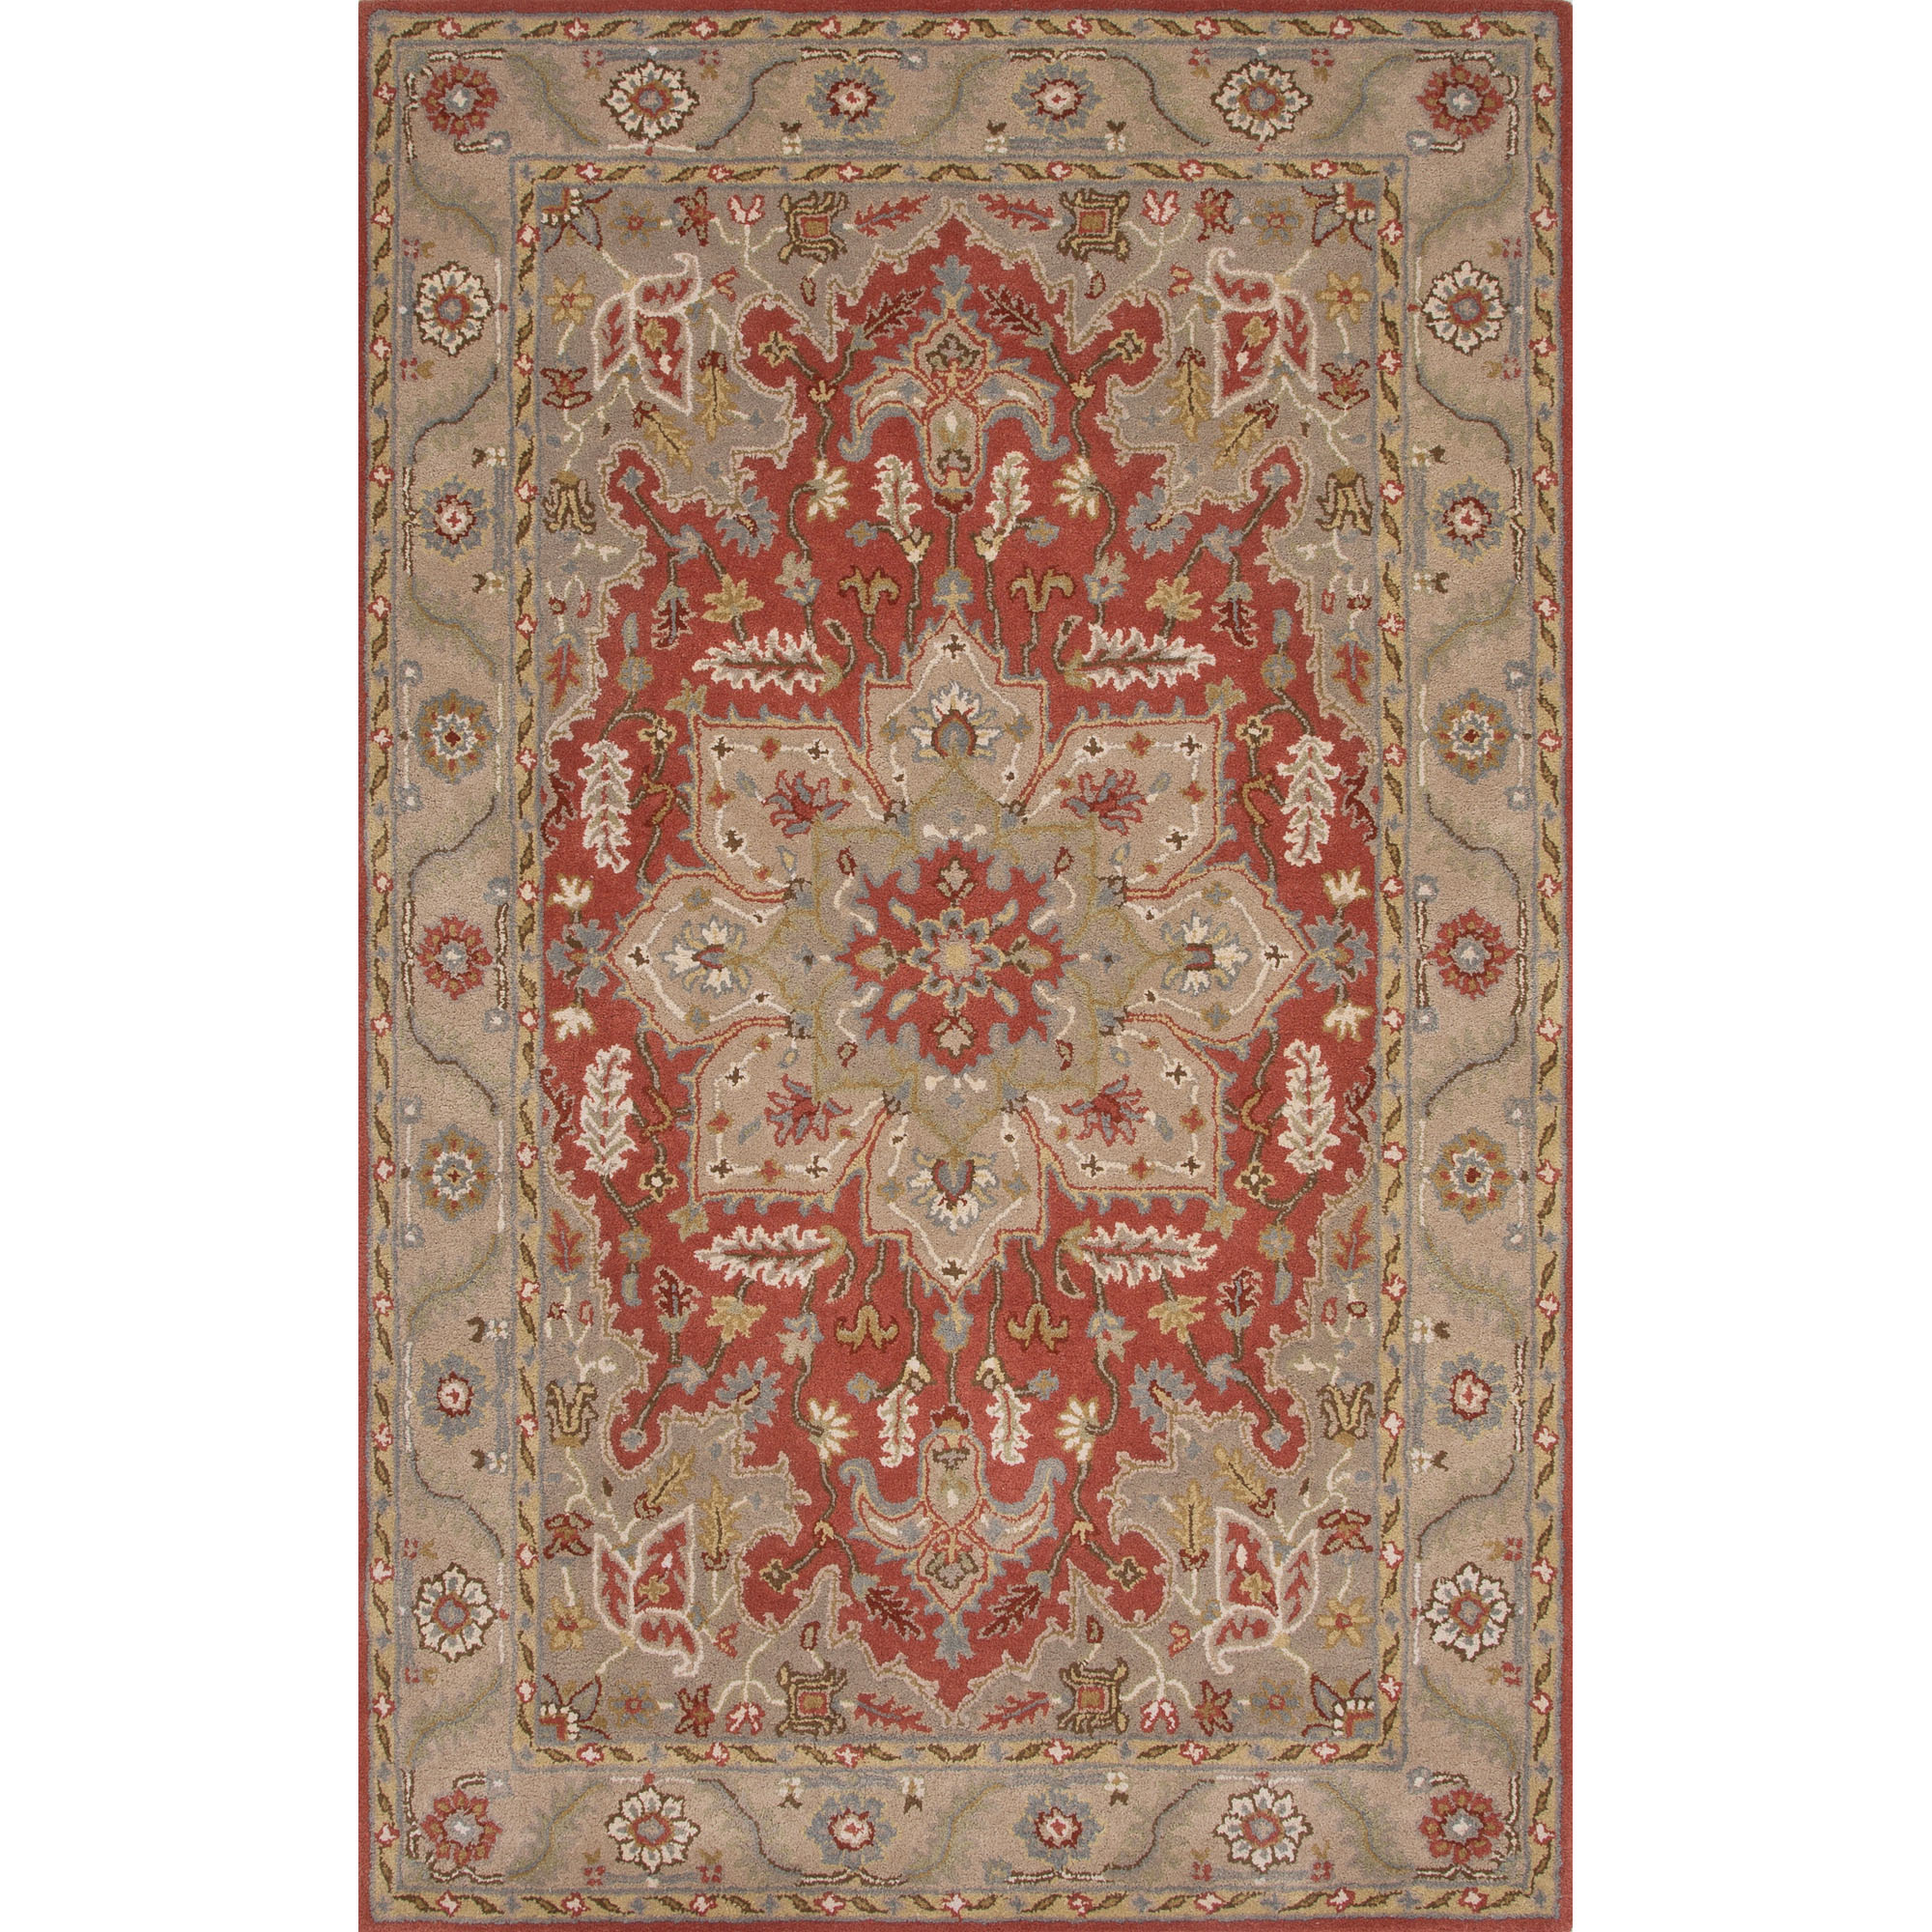 Poeme 9.6 x 13.6 Rug by JAIPUR Living at Malouf Furniture Co.